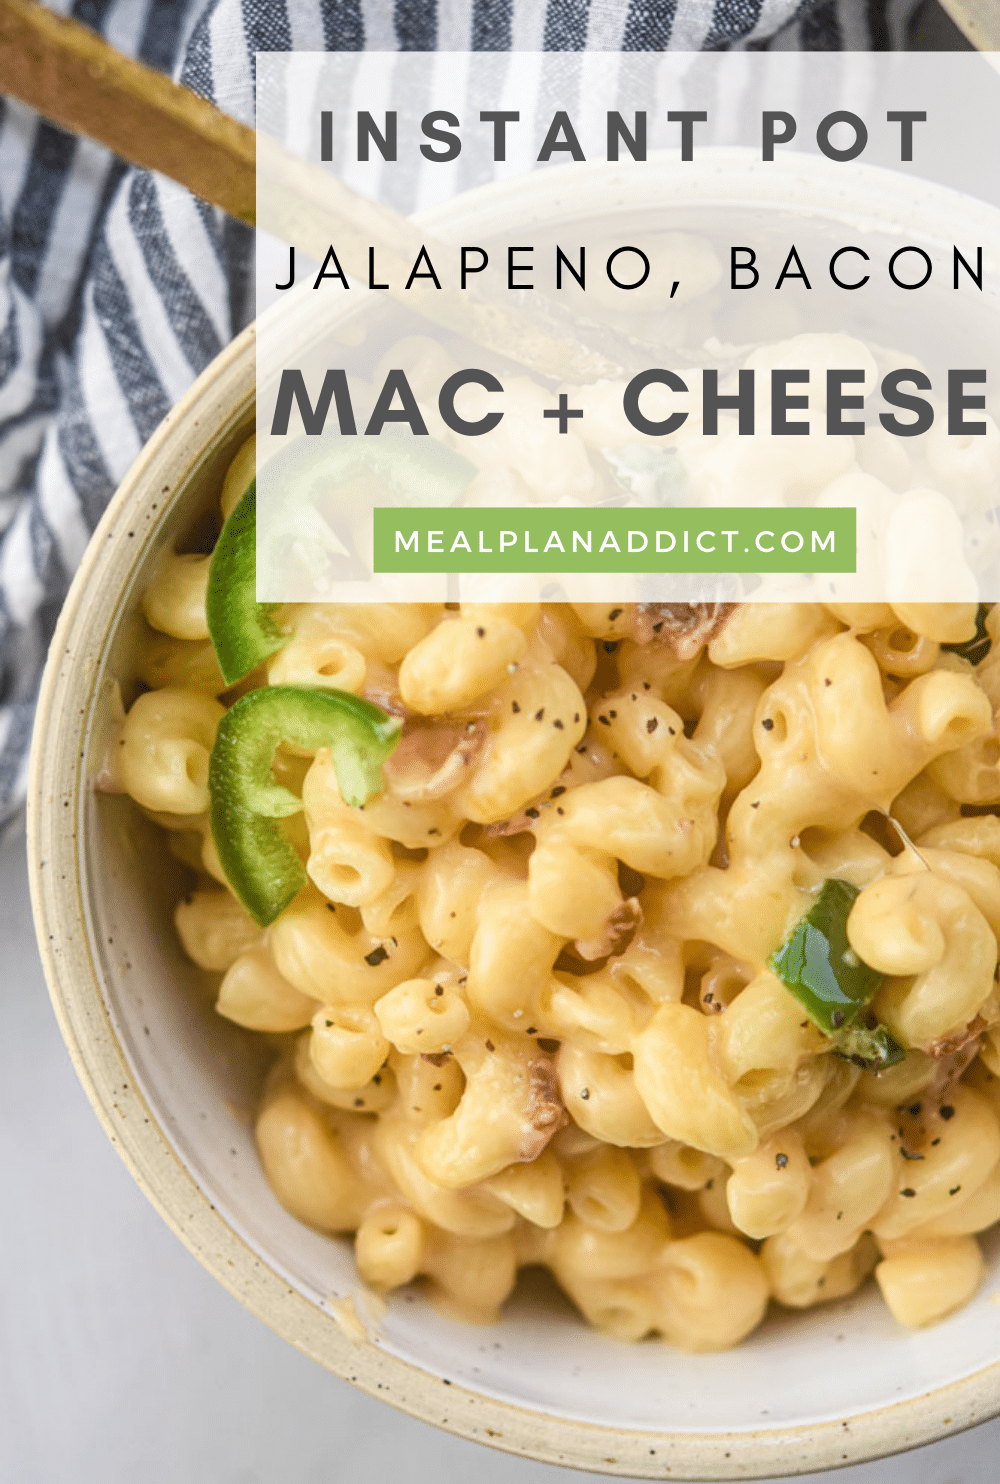 Mac and cheese pin for Pinterest